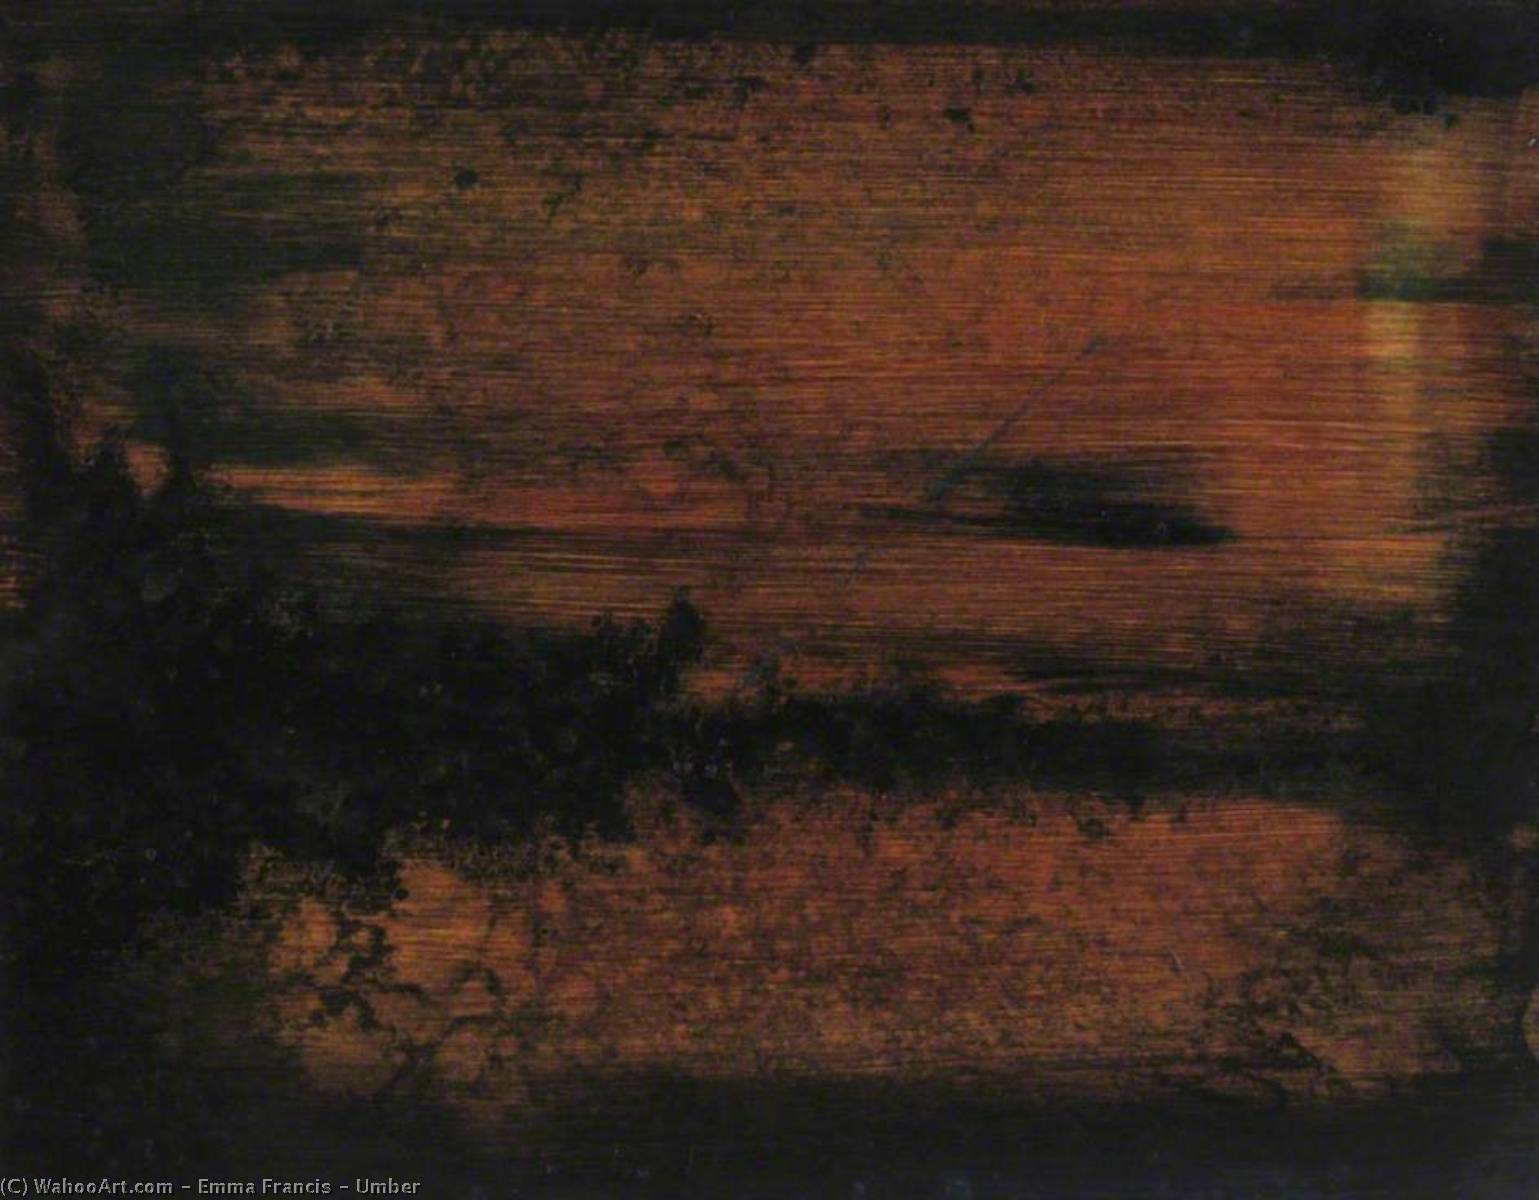 Umber, 2004 by Emma Francis | Famous Paintings Reproductions | WahooArt.com